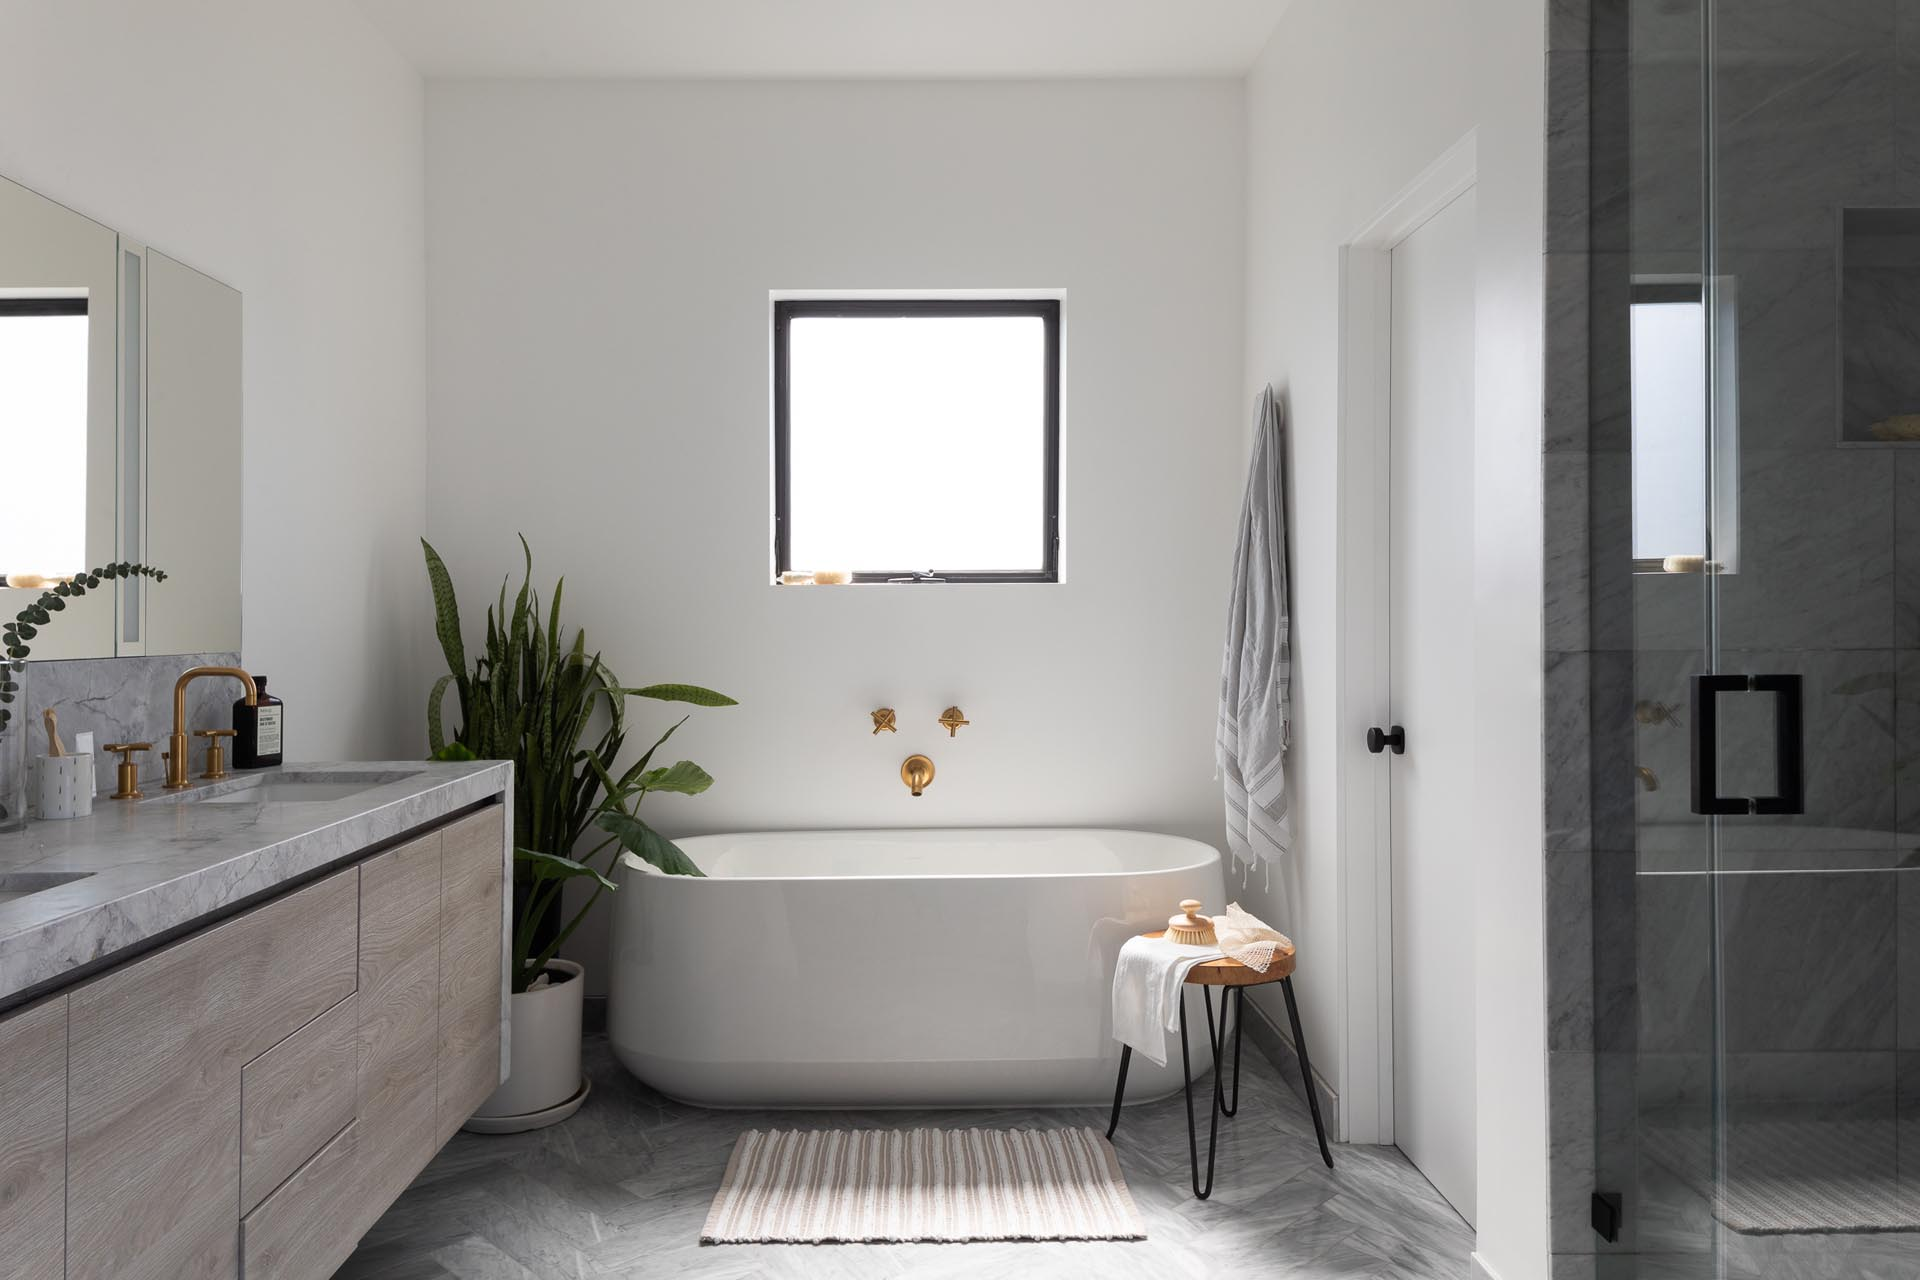 In this modern en-suite bathroom, there's a freestanding white bathtub, a walk-in shower, and a wood vanity with a waterfall countertop.